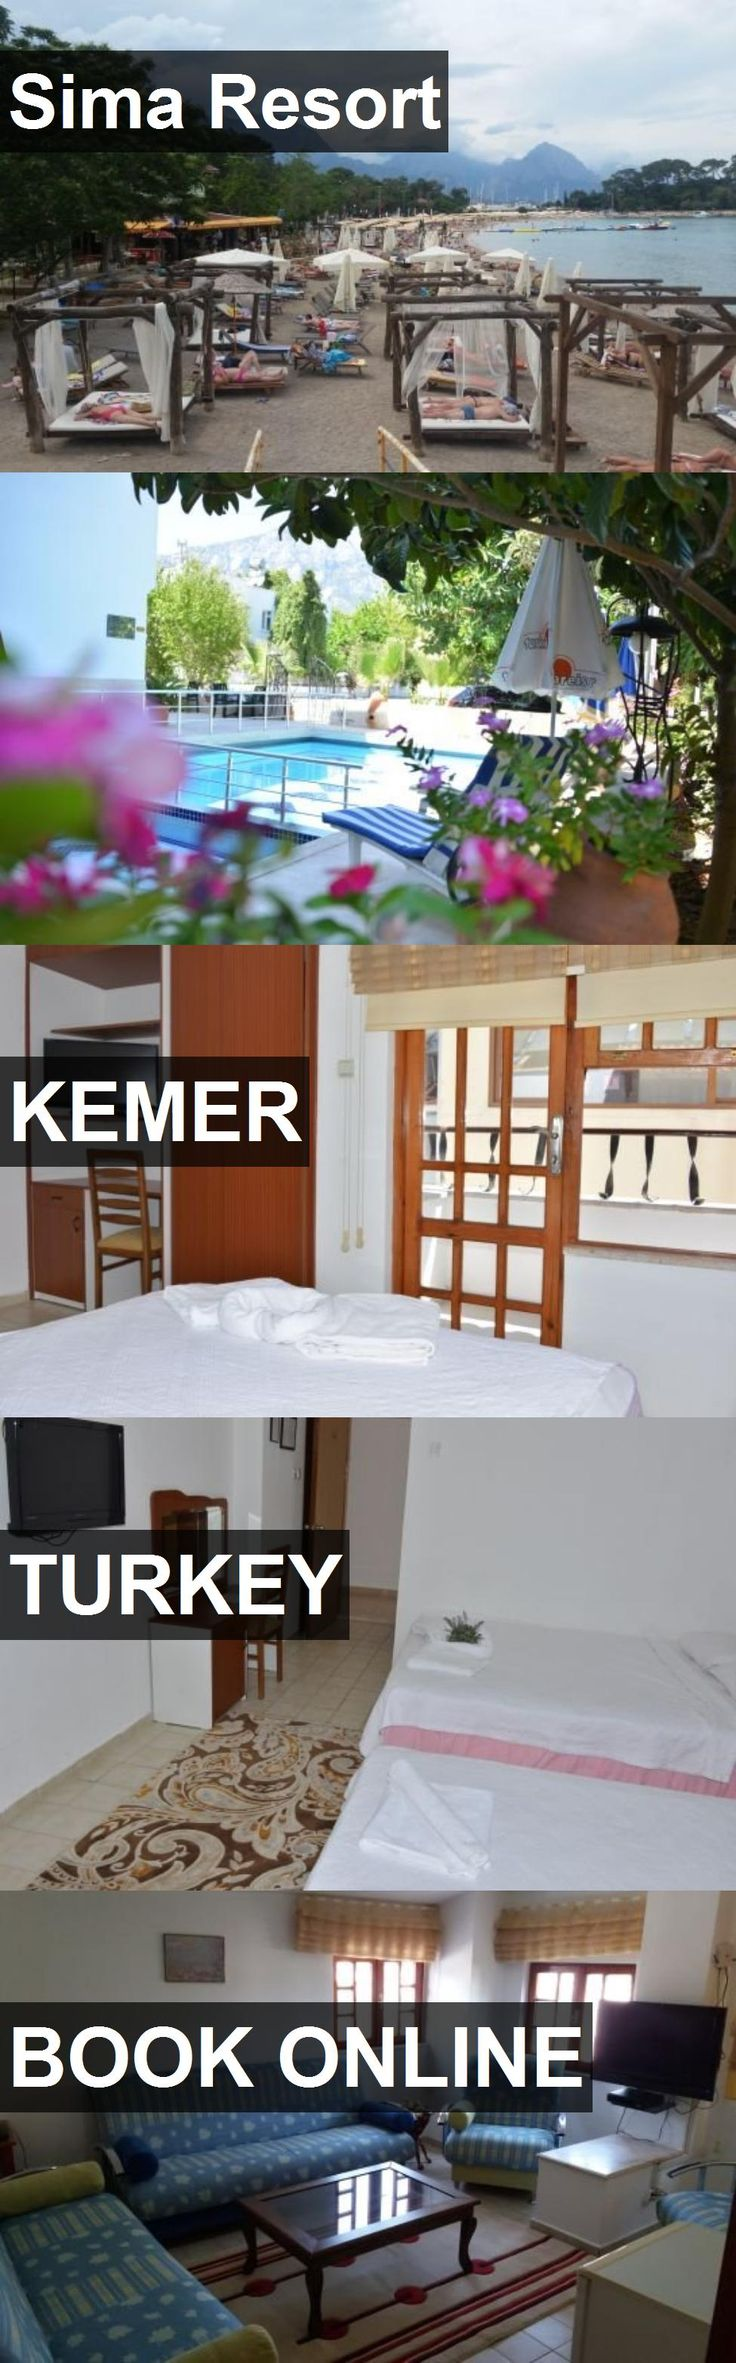 Hotel Sima Resort in Kemer, Turkey. For more information, photos, reviews and best prices please follow the link. #Turkey #Kemer #travel #vacation #hotel